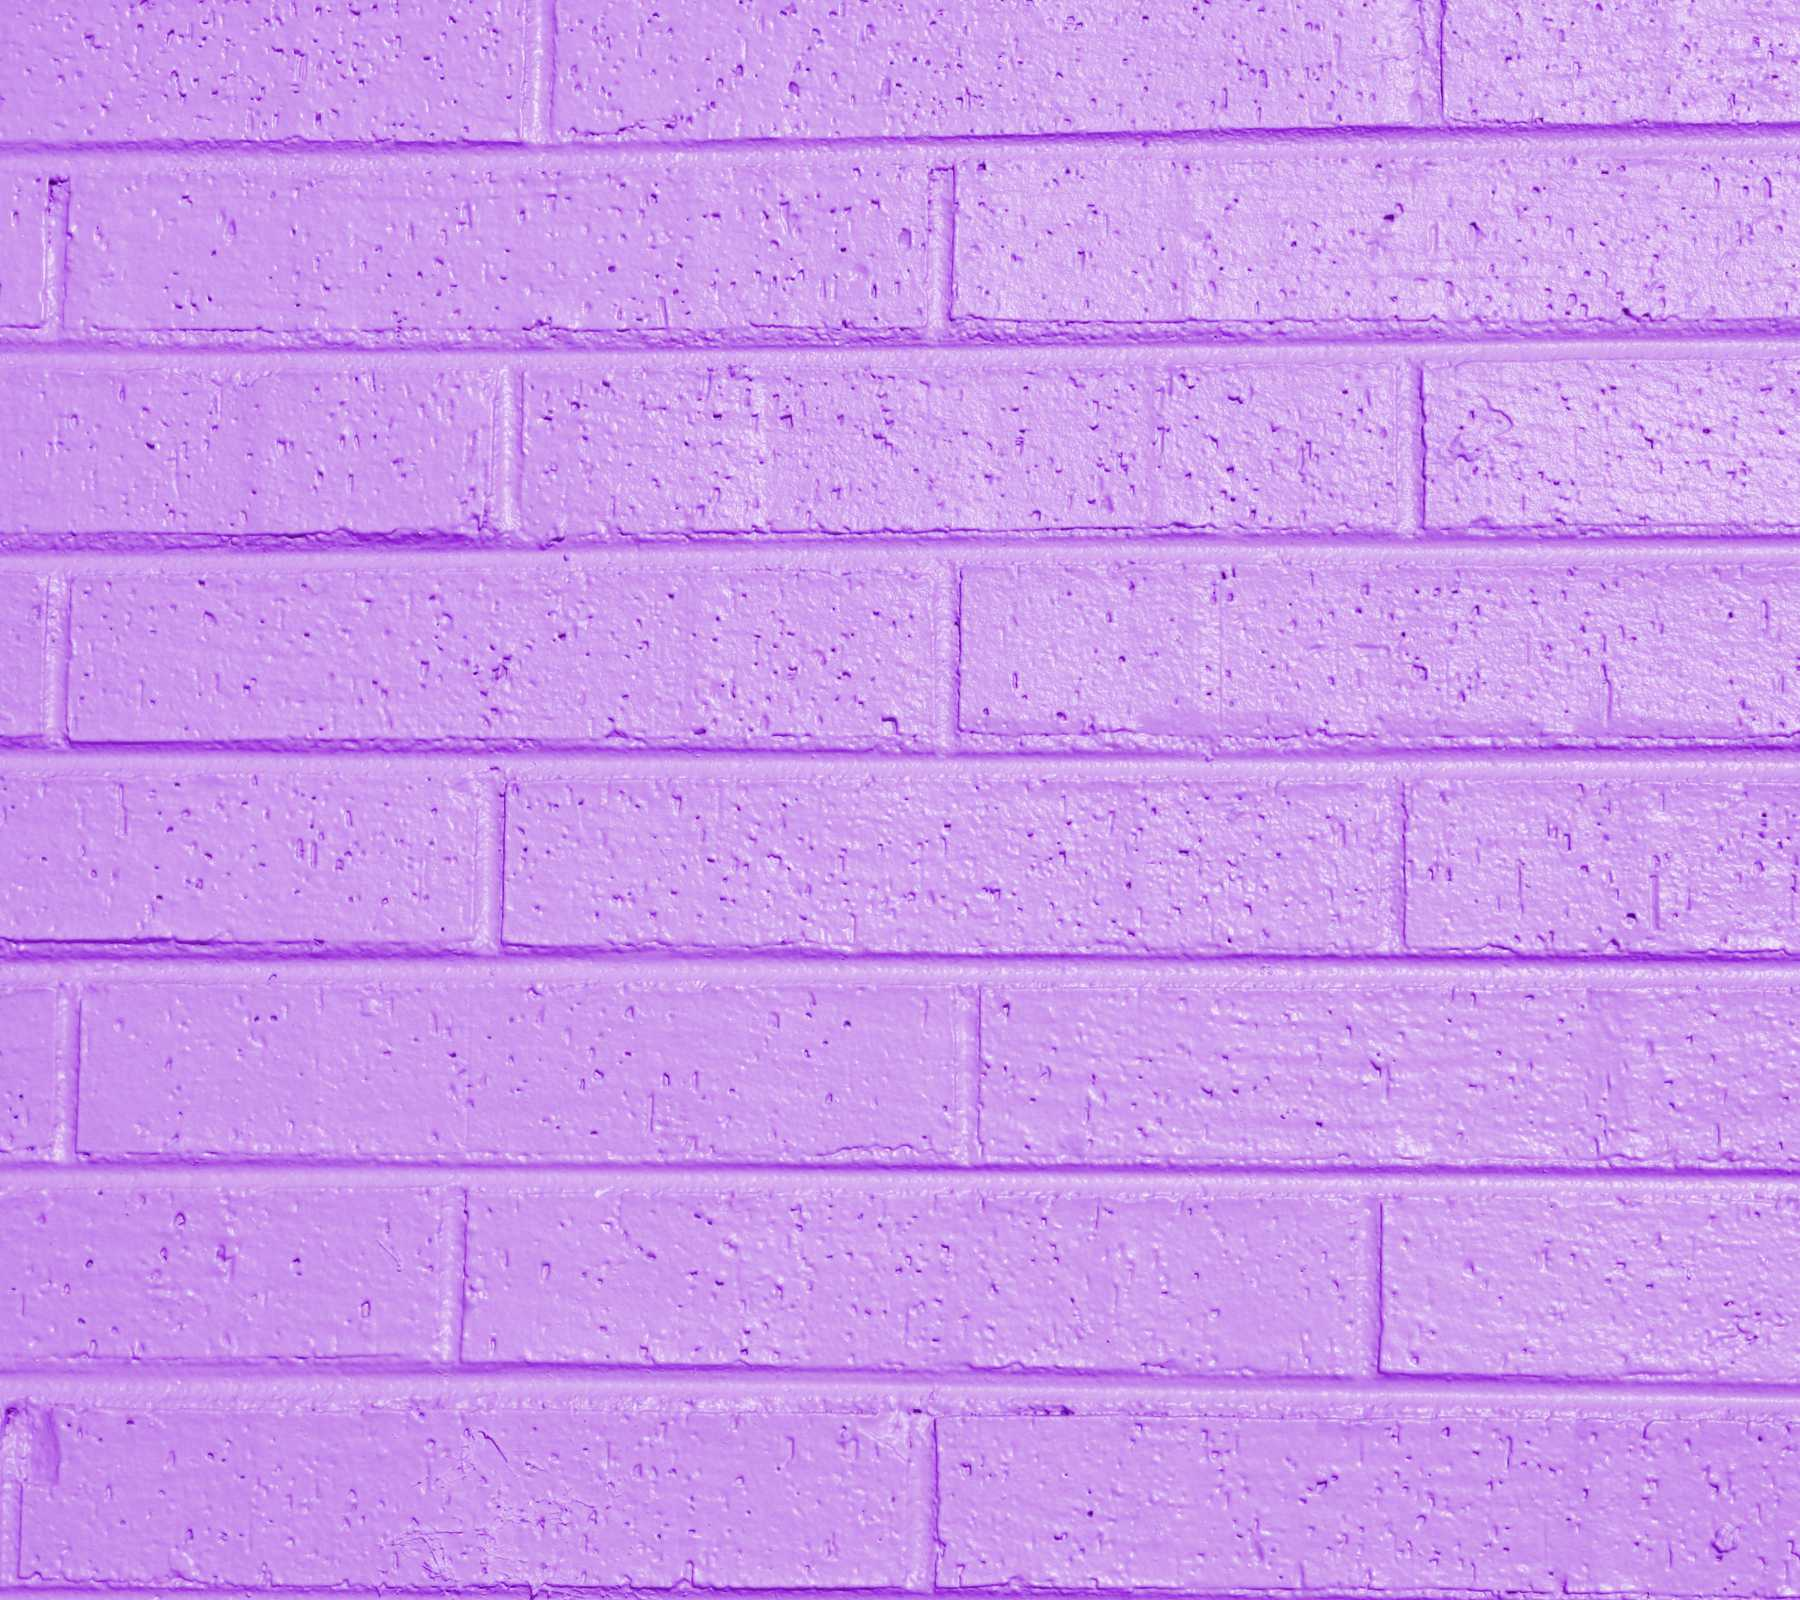 Lavender Painted Brick Wall Background Twitter Backgrounds 1800x1600